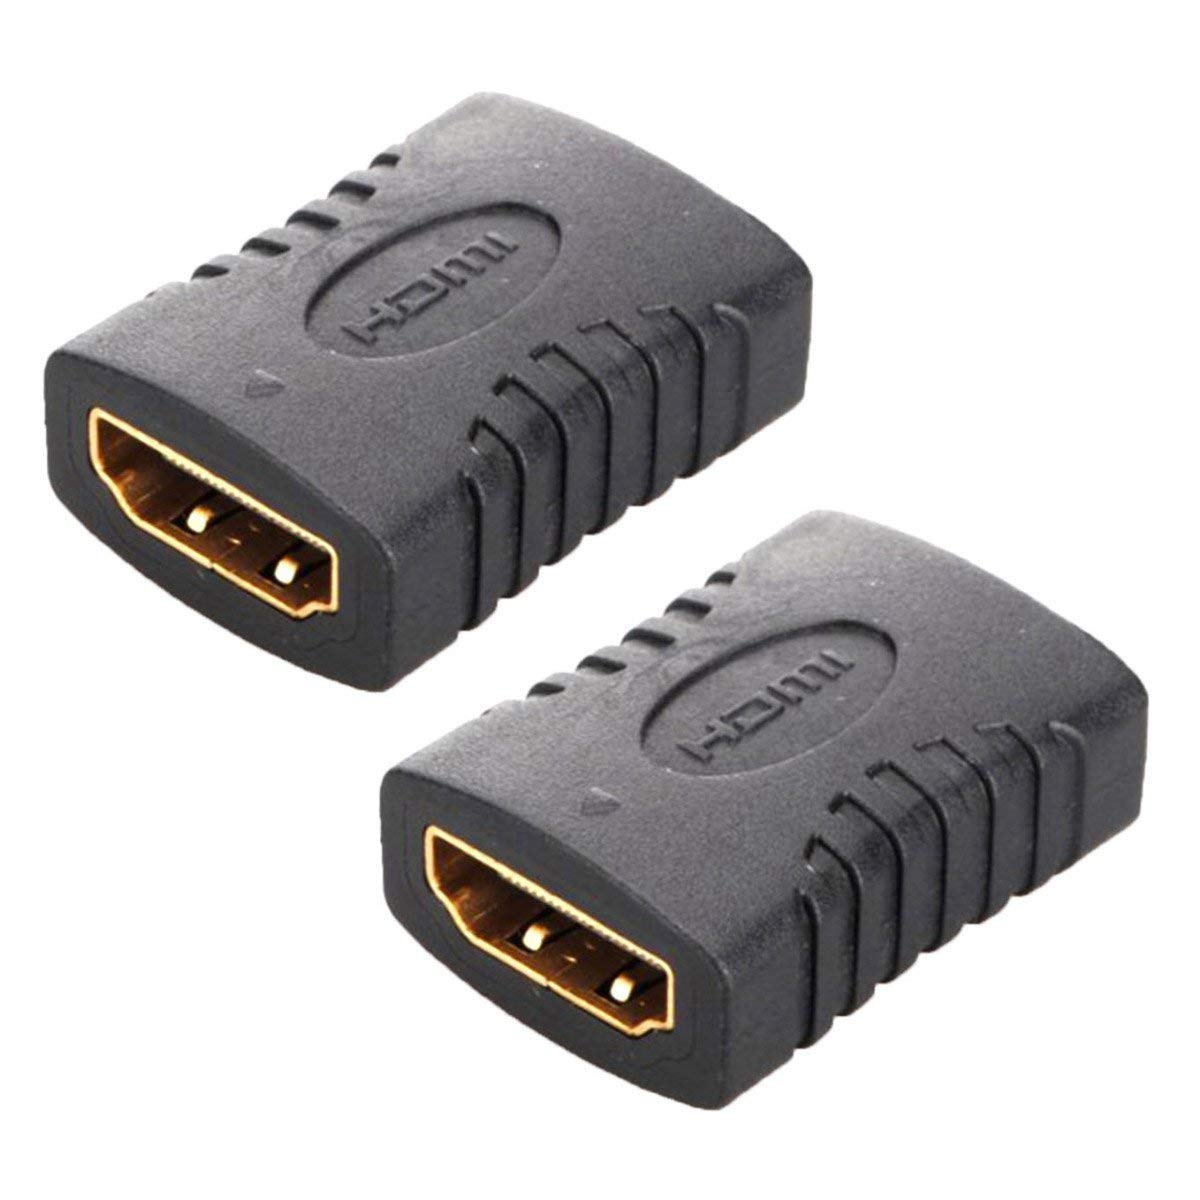 FolioGadgets HDMI Female to Female Adapter Gold Plated High Speed HDMI Female Coupler 3D&4K Resolution - 2-Pack